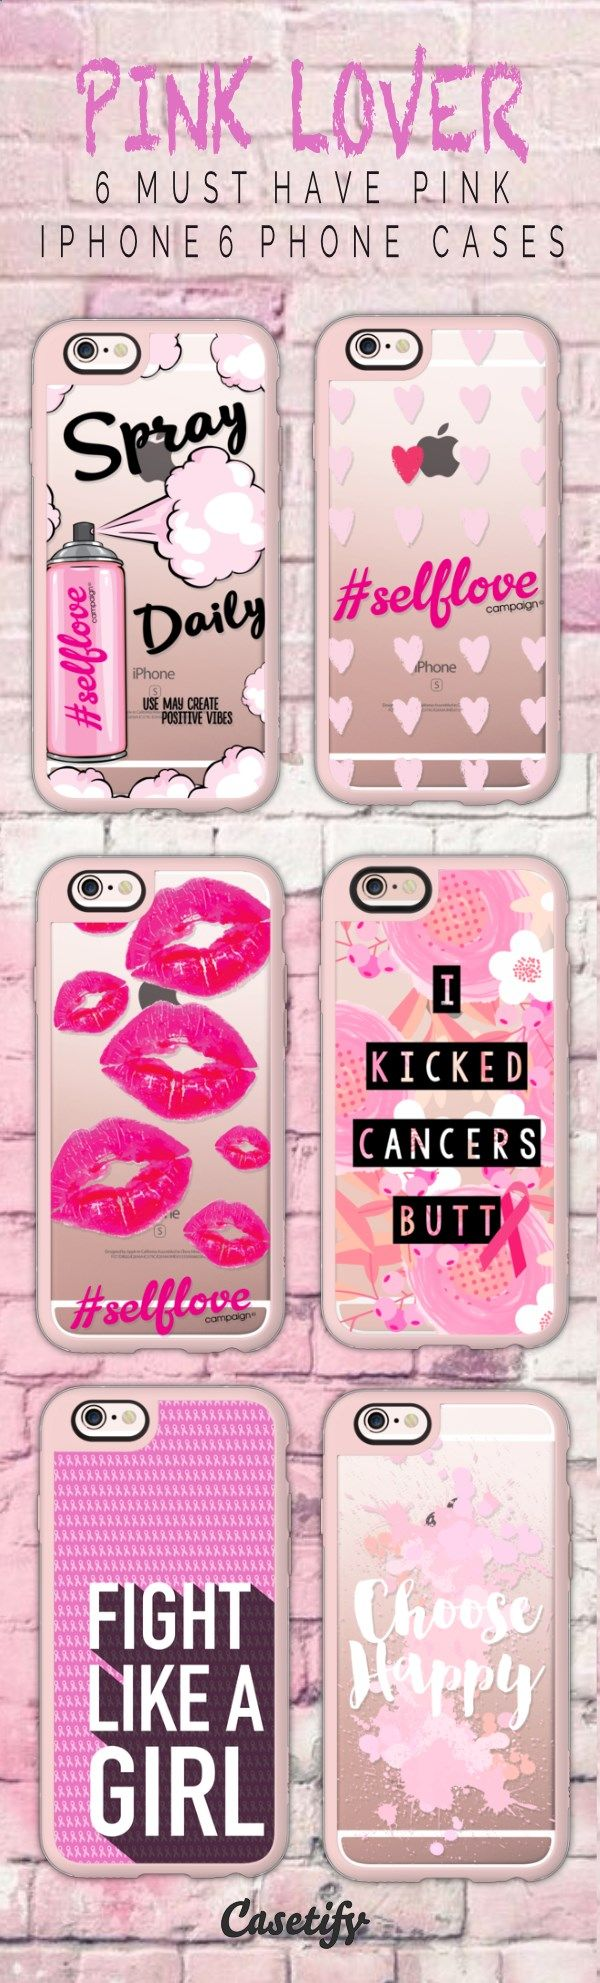 6 must have pink iPhone 6 protective phone case designs | Click through to see more iphone phone case ideas >>> www.casetify.com/... #quote | Casetify